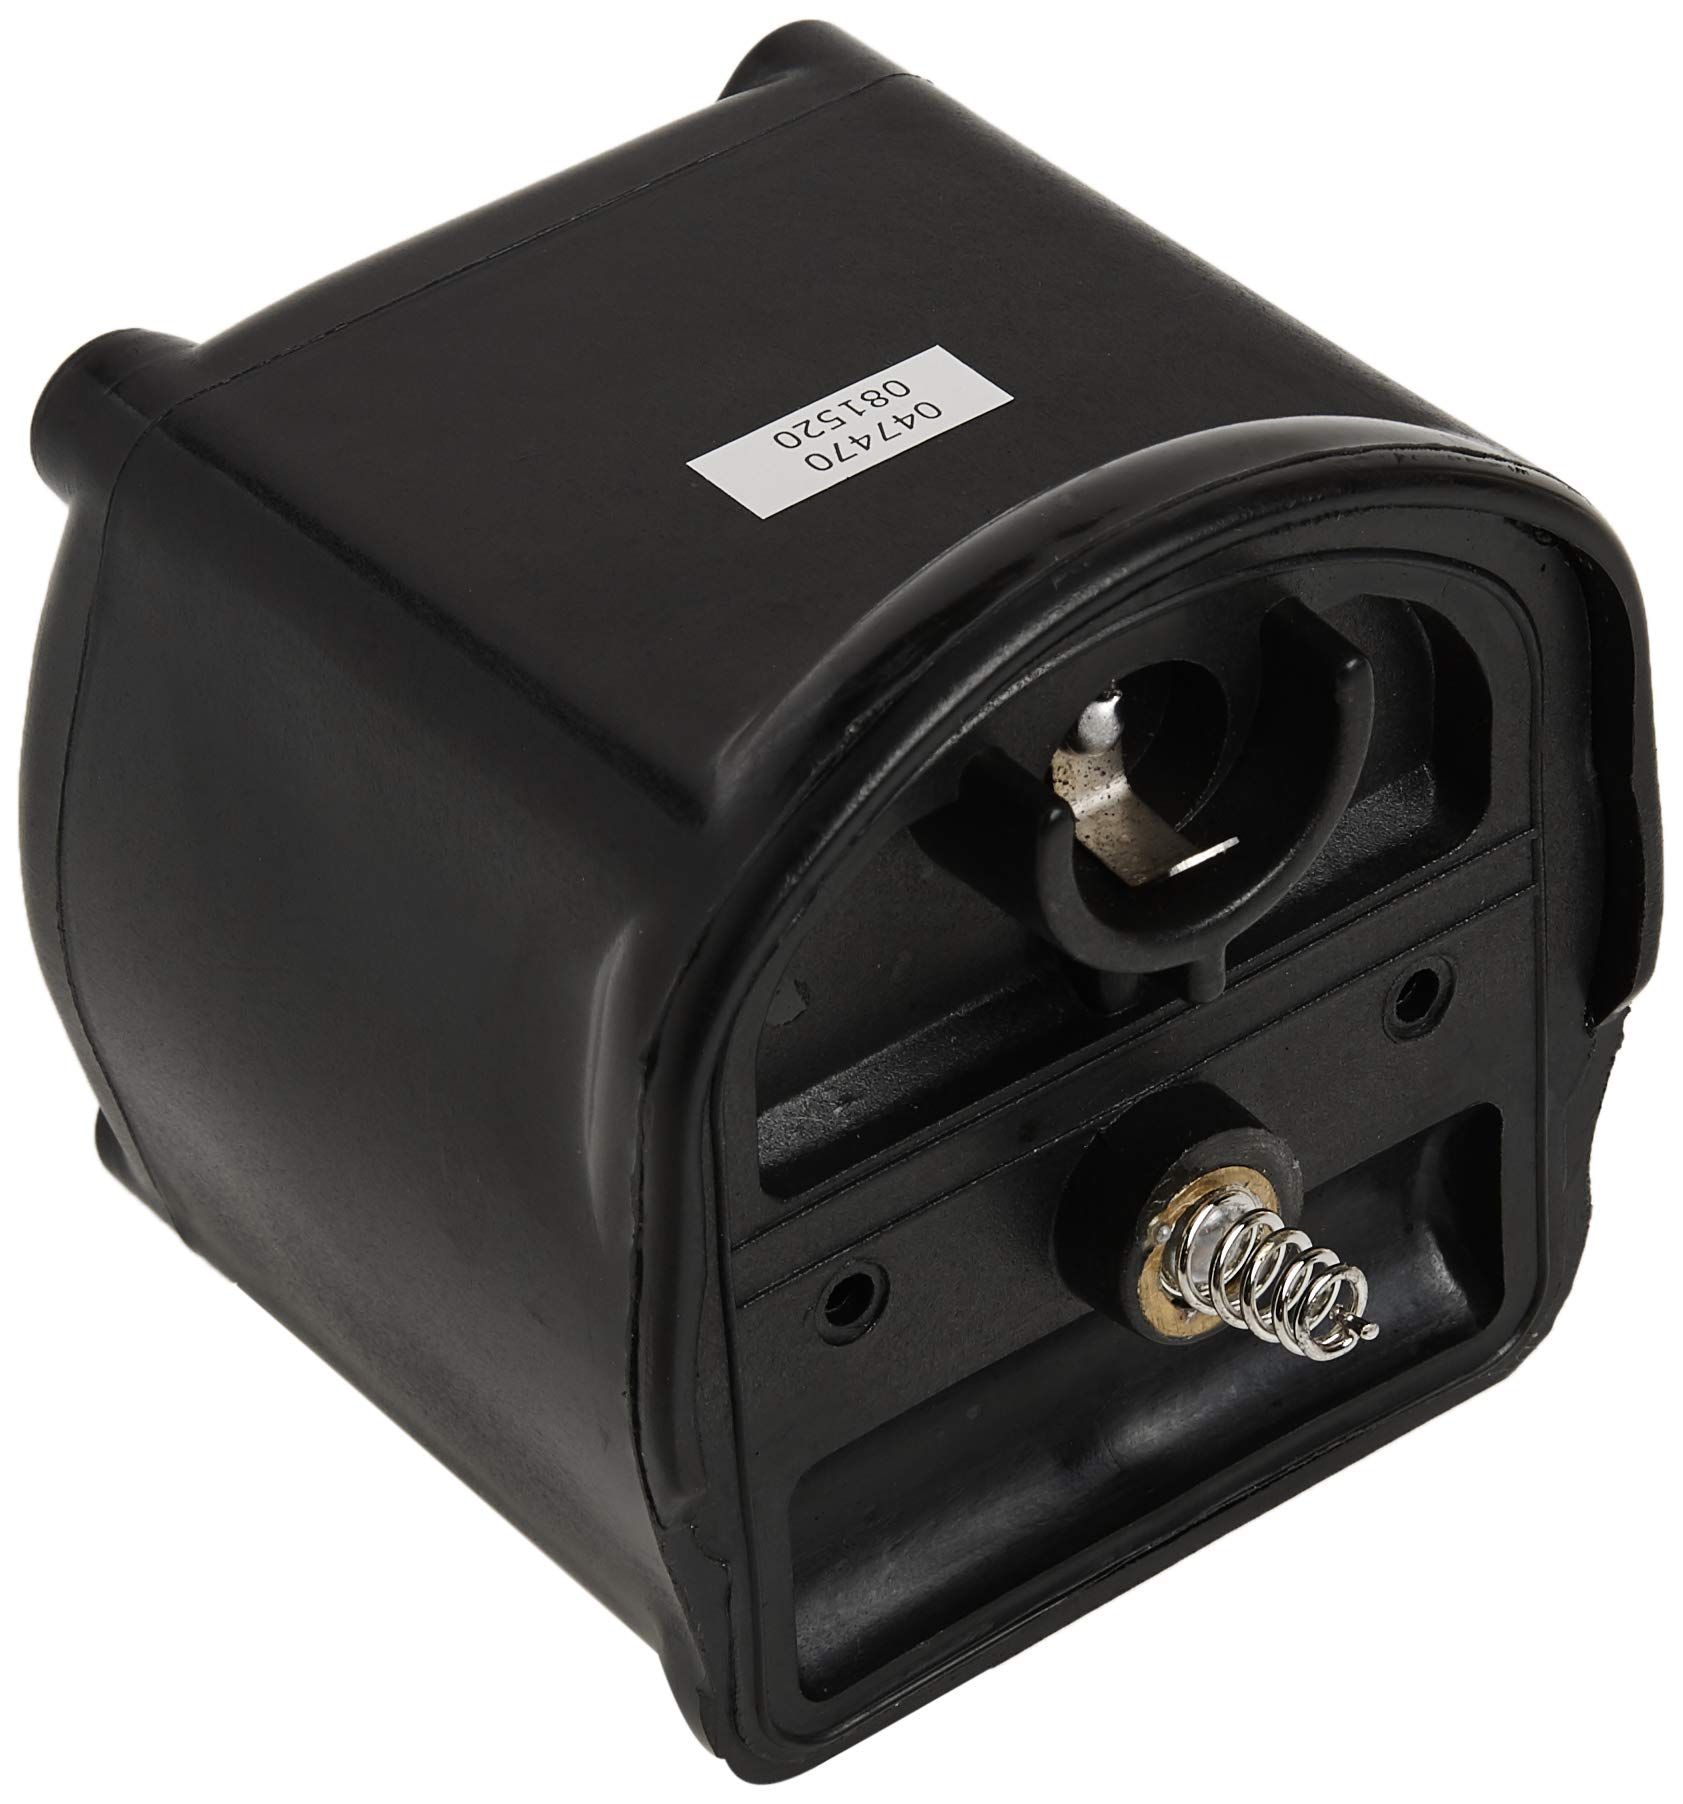 DB Electrical 160-01004 12 Volt Ignition Coil Compatible with/Replacement for Ford Tractor Front Mount Coil 8N 2N 9N12024, 160-01004, 1100-0542